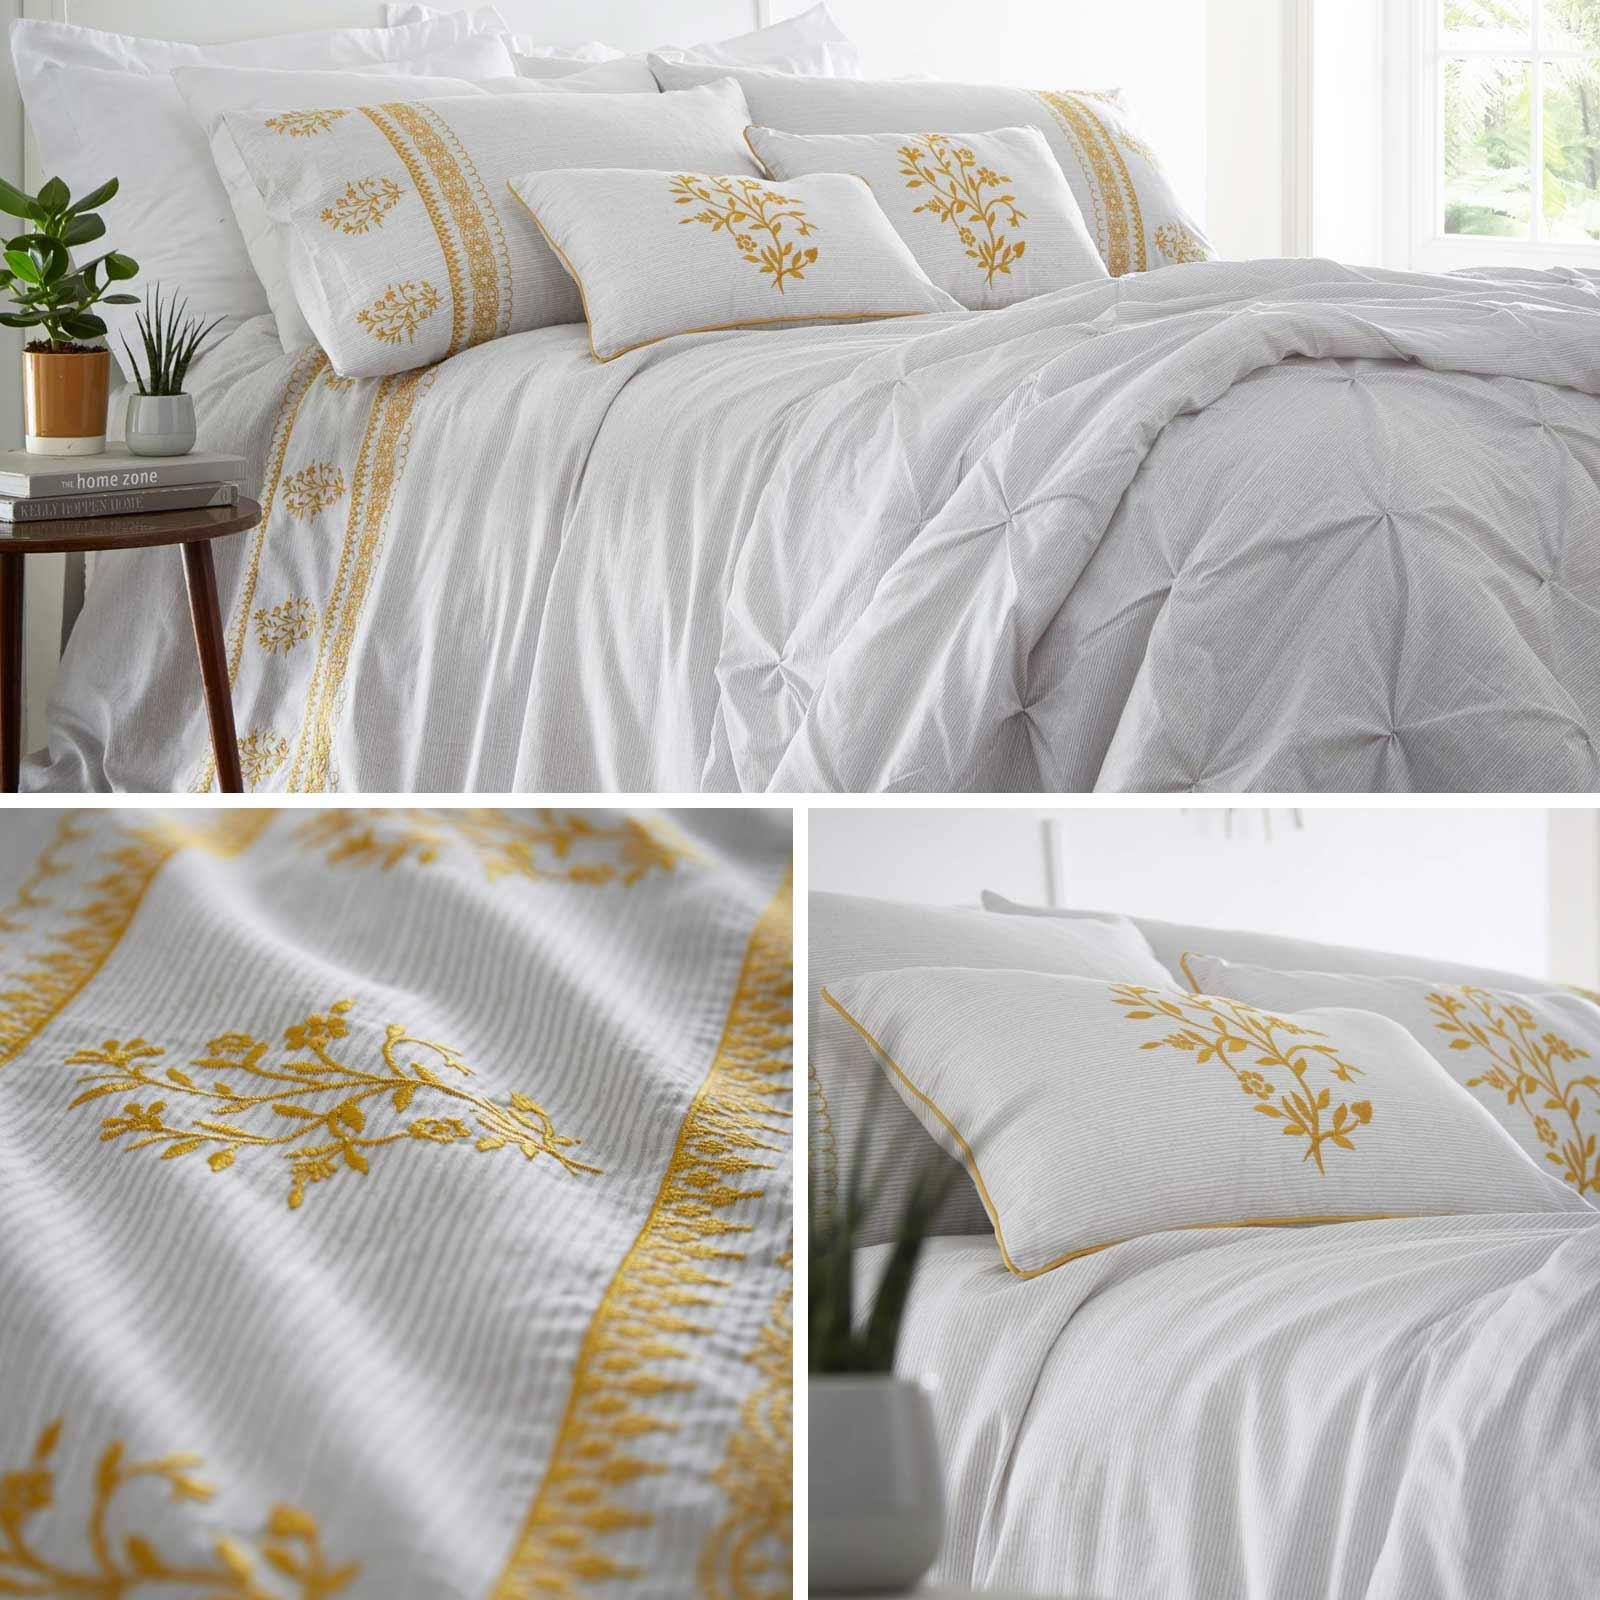 Ochre Duvet Covers Floral Embroidered Bohemian Grey Quilt Cover Bedding Sets Ebay